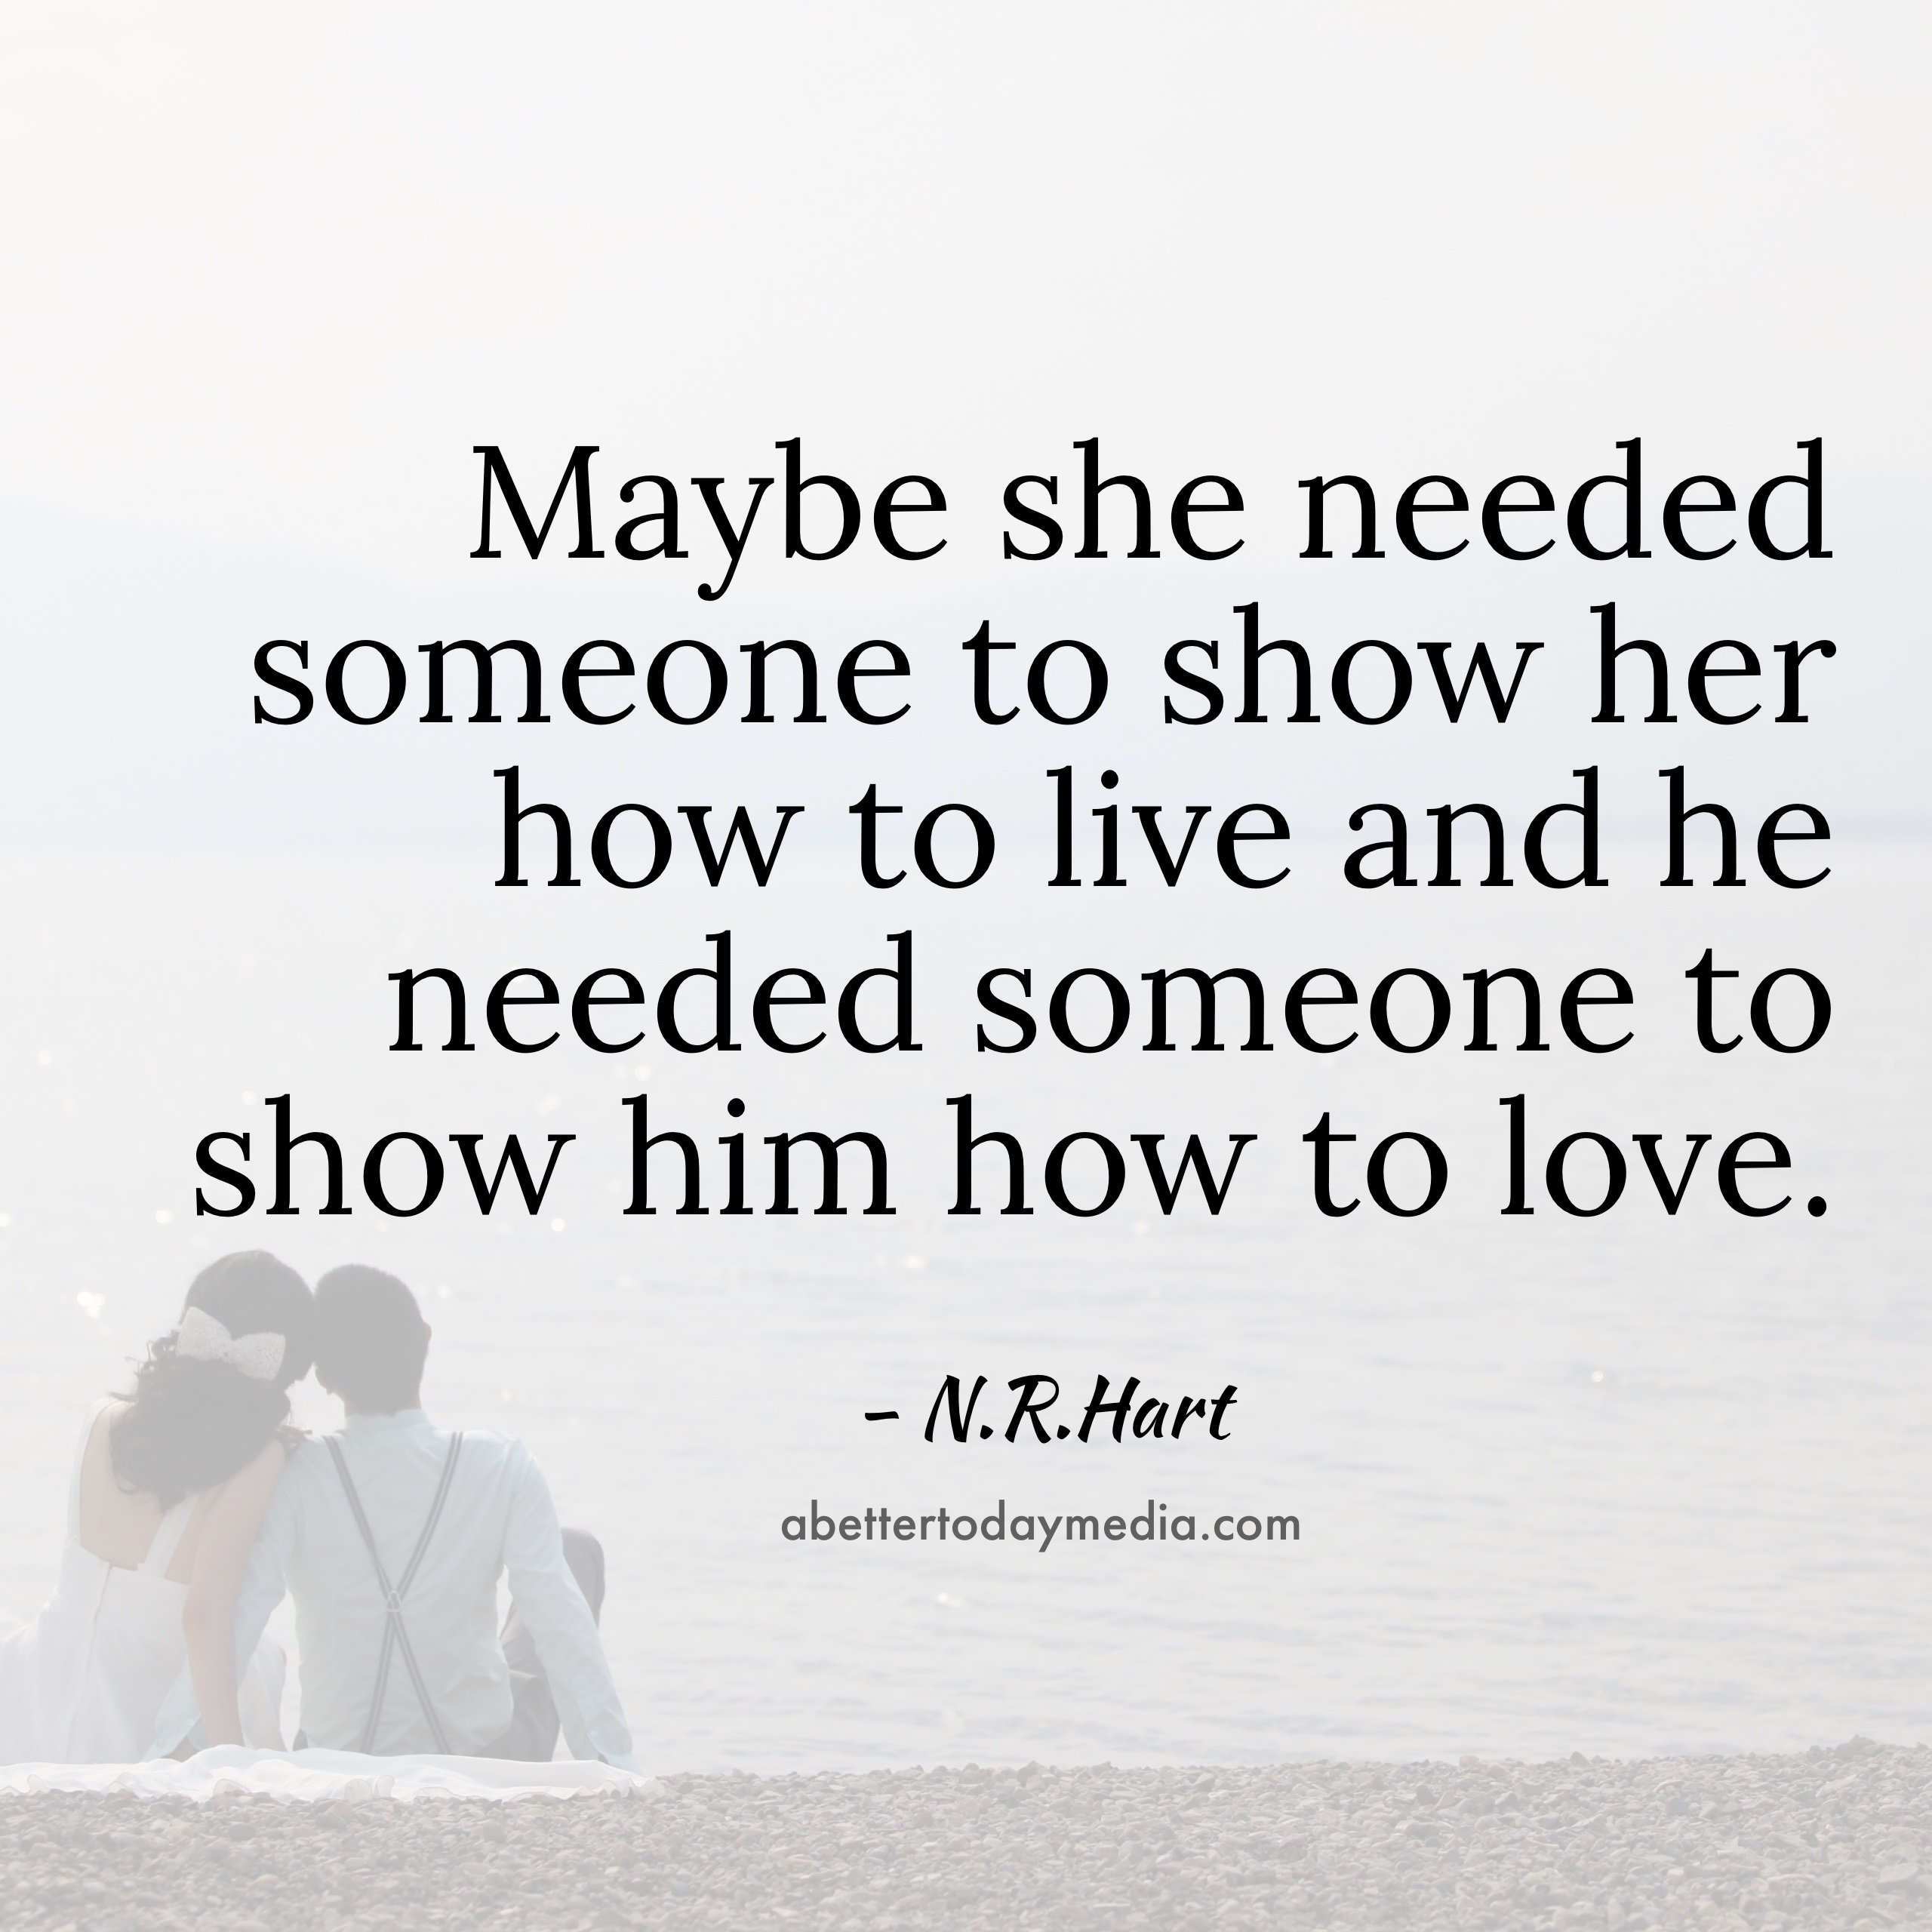 Beautiful Love Quotes For Him 16 Beautiful N.rhart Love Quotes With Images  A Better Today Media